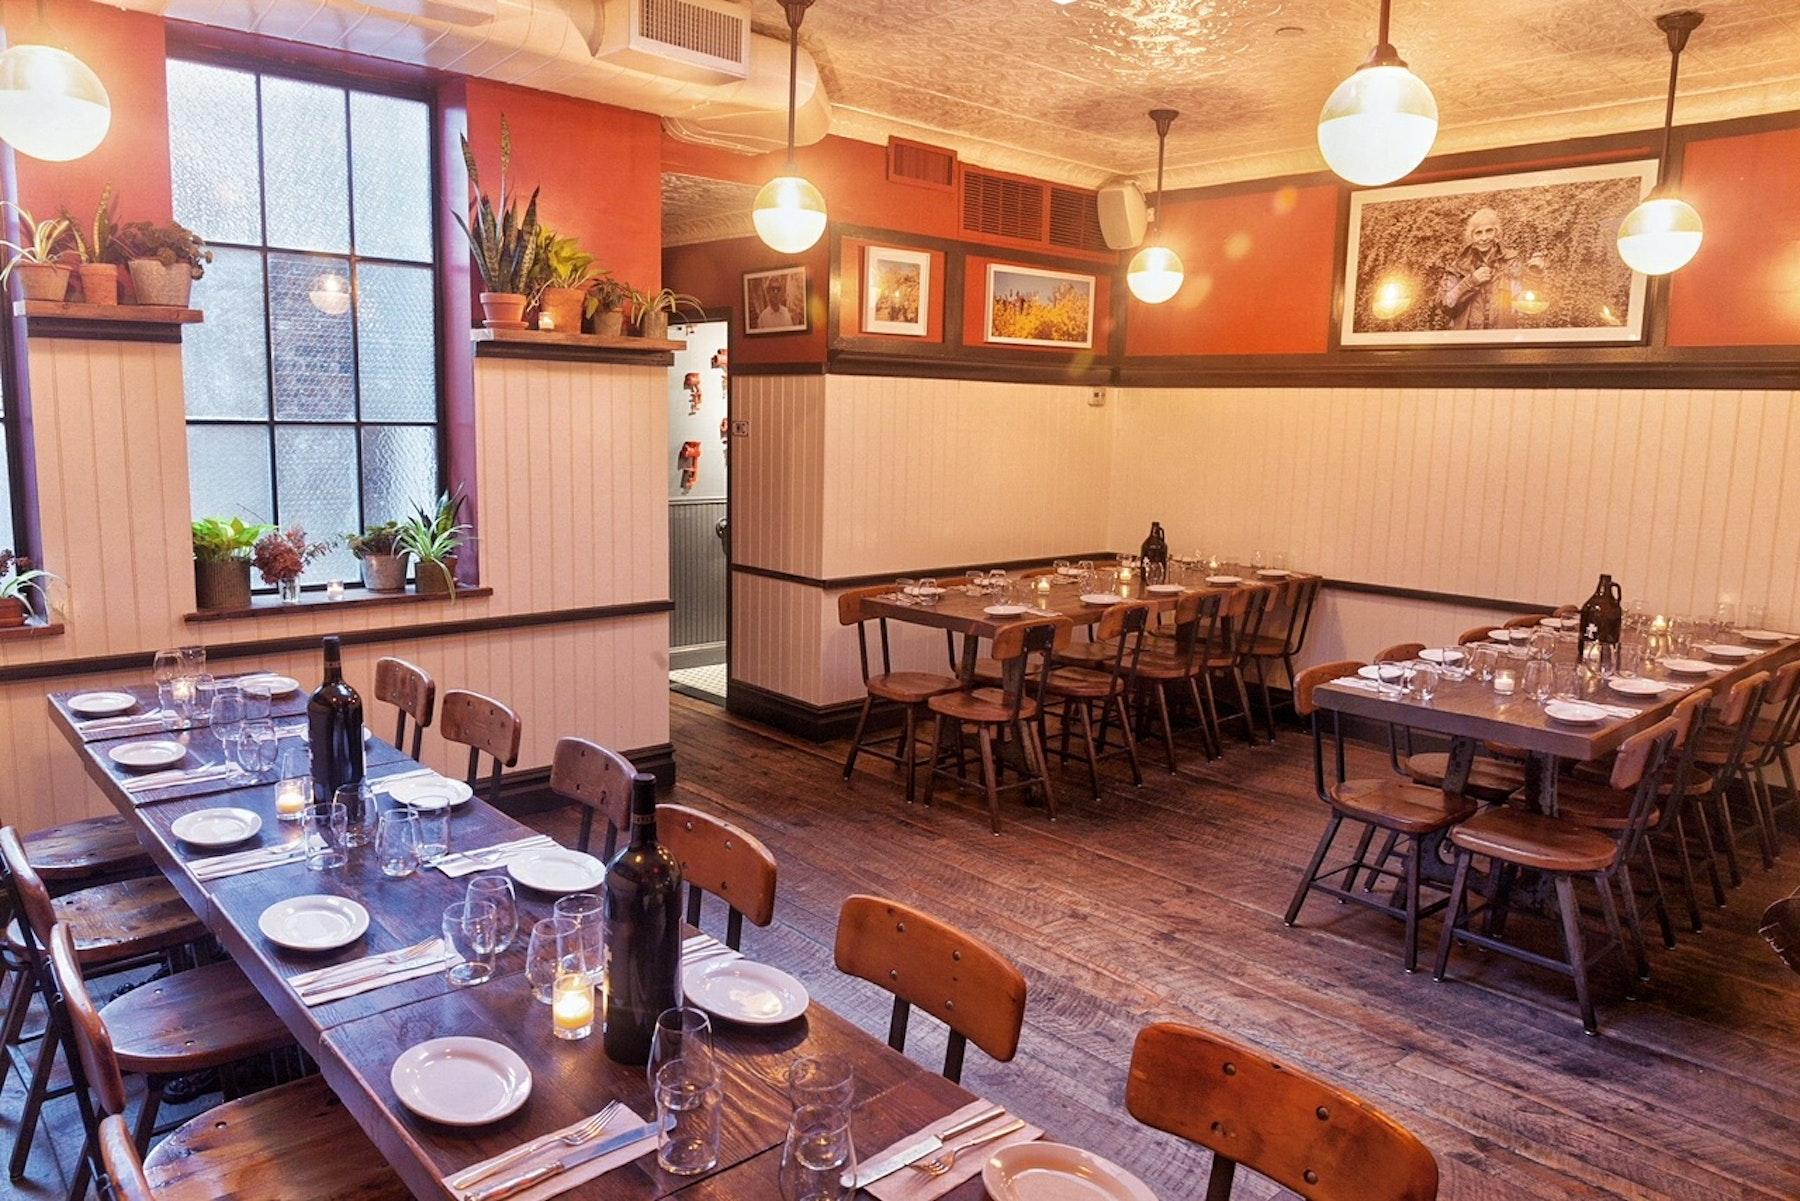 Group Events The Meatball Shop